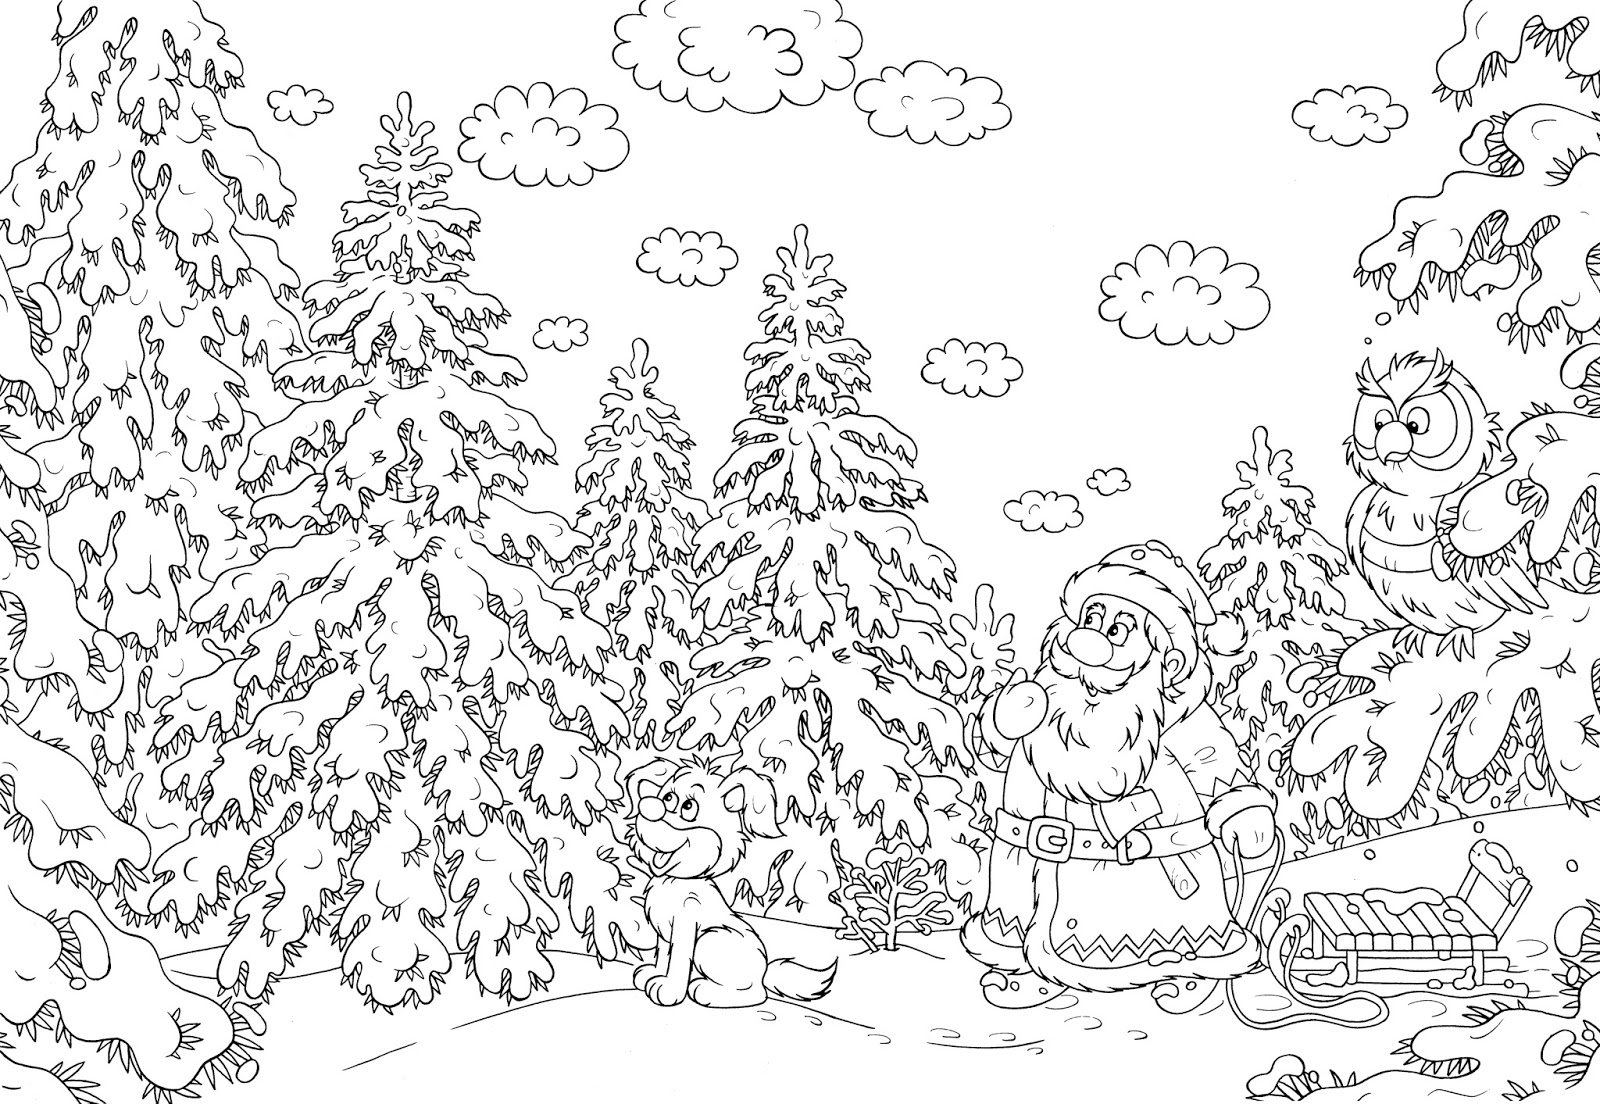 serendipity adult coloring pages seasonal winterchristmas - Christmas Coloring Pages For Adults